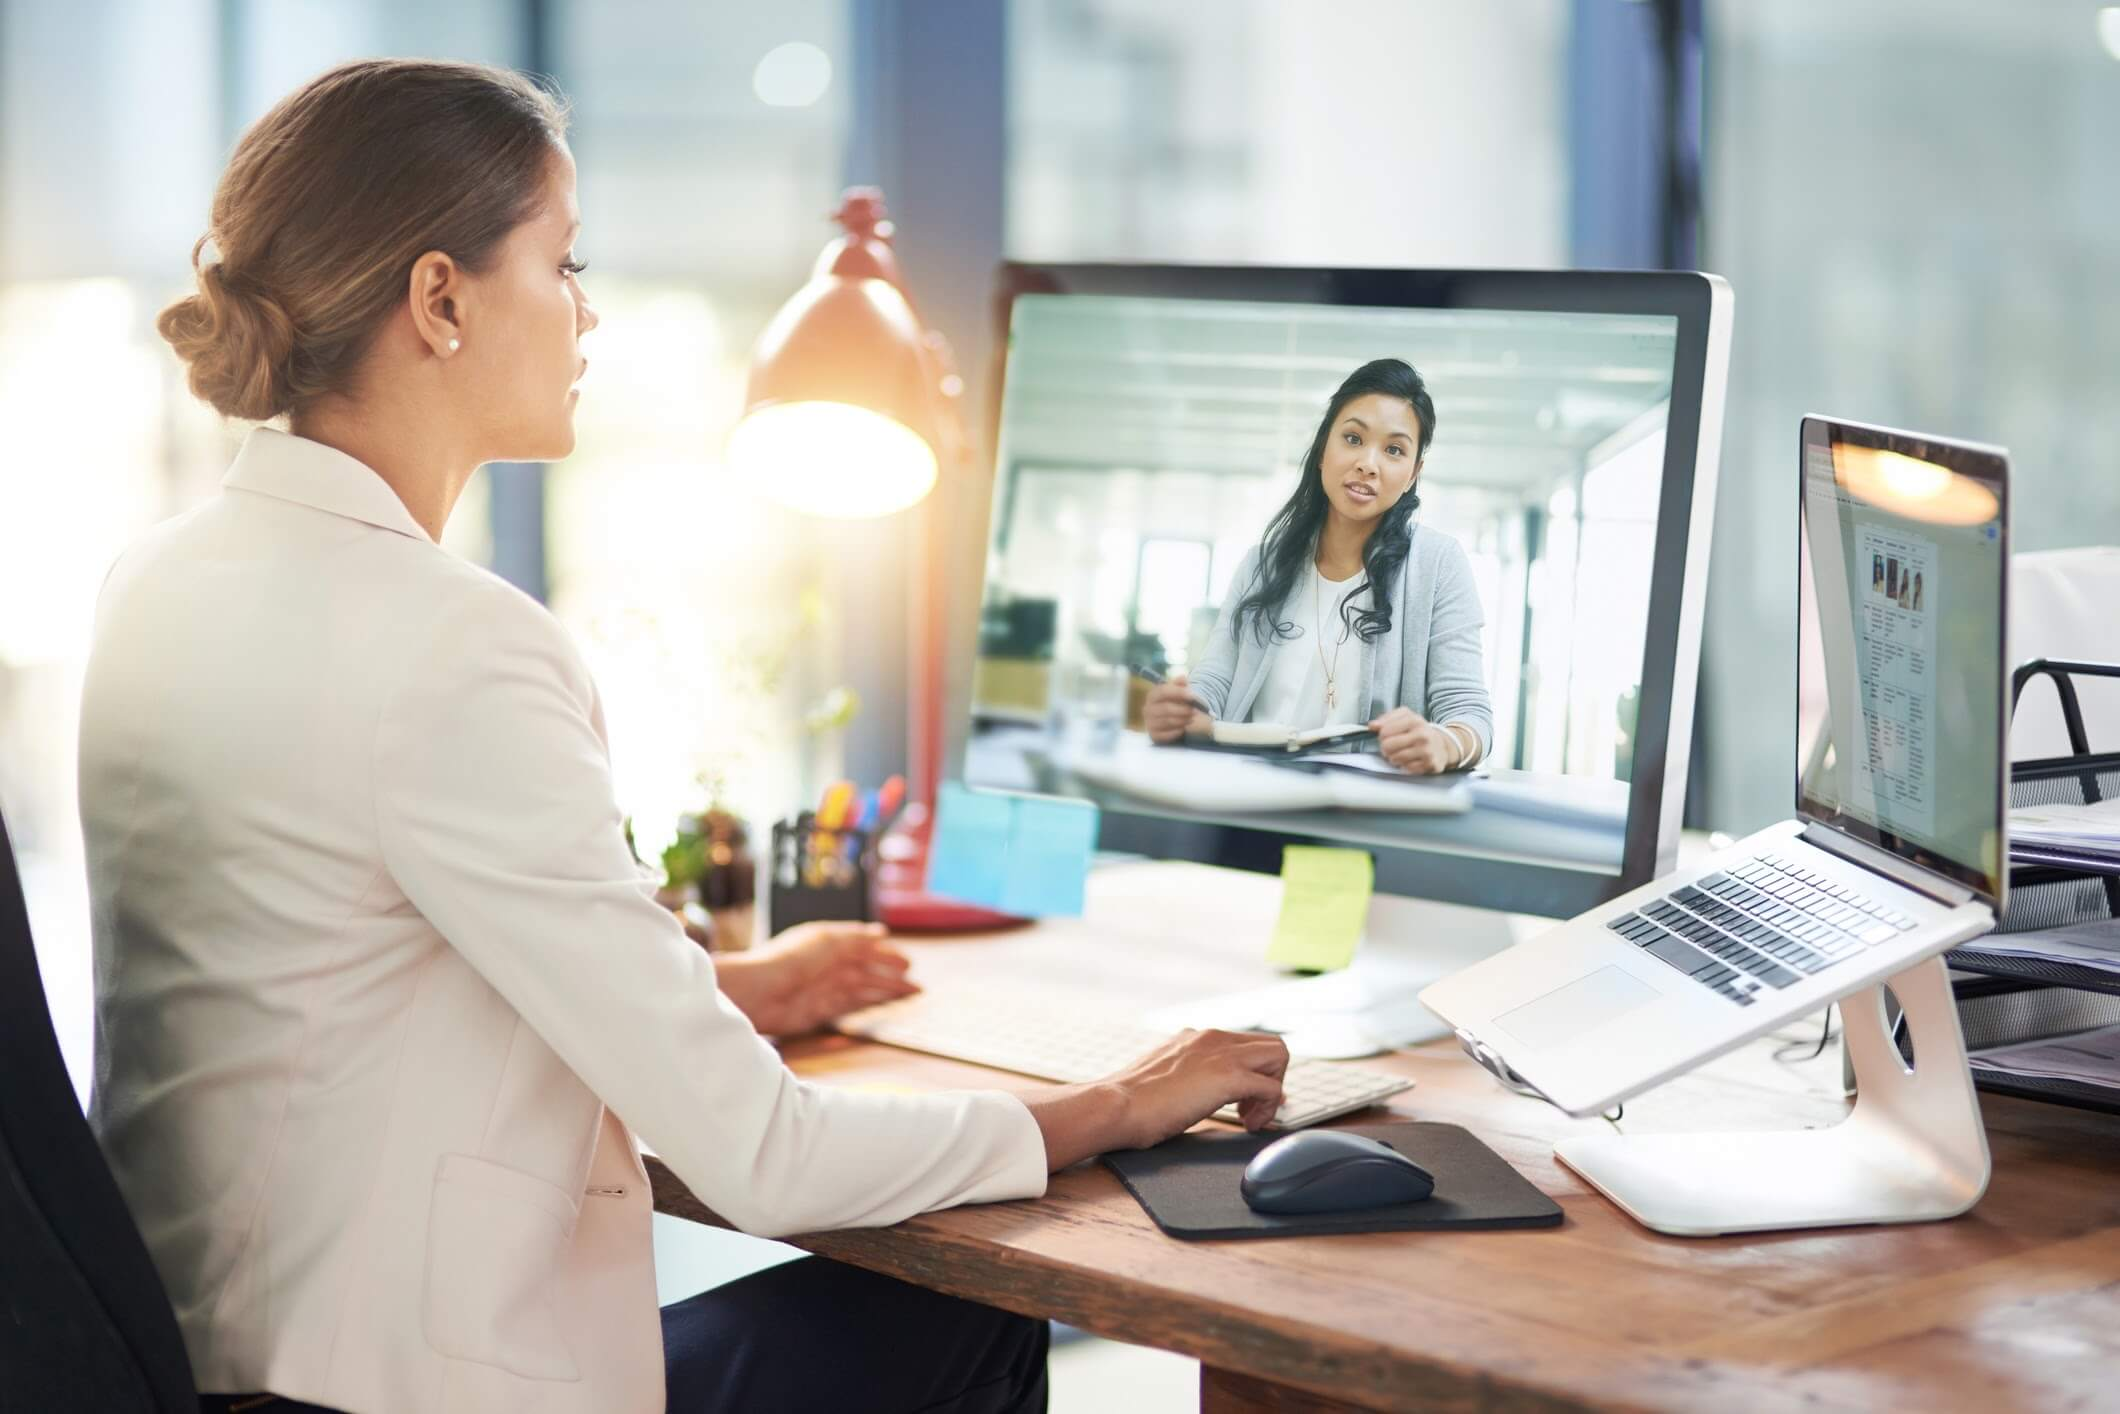 Business owner delegating tasks to a member of her virtual team on a video conference